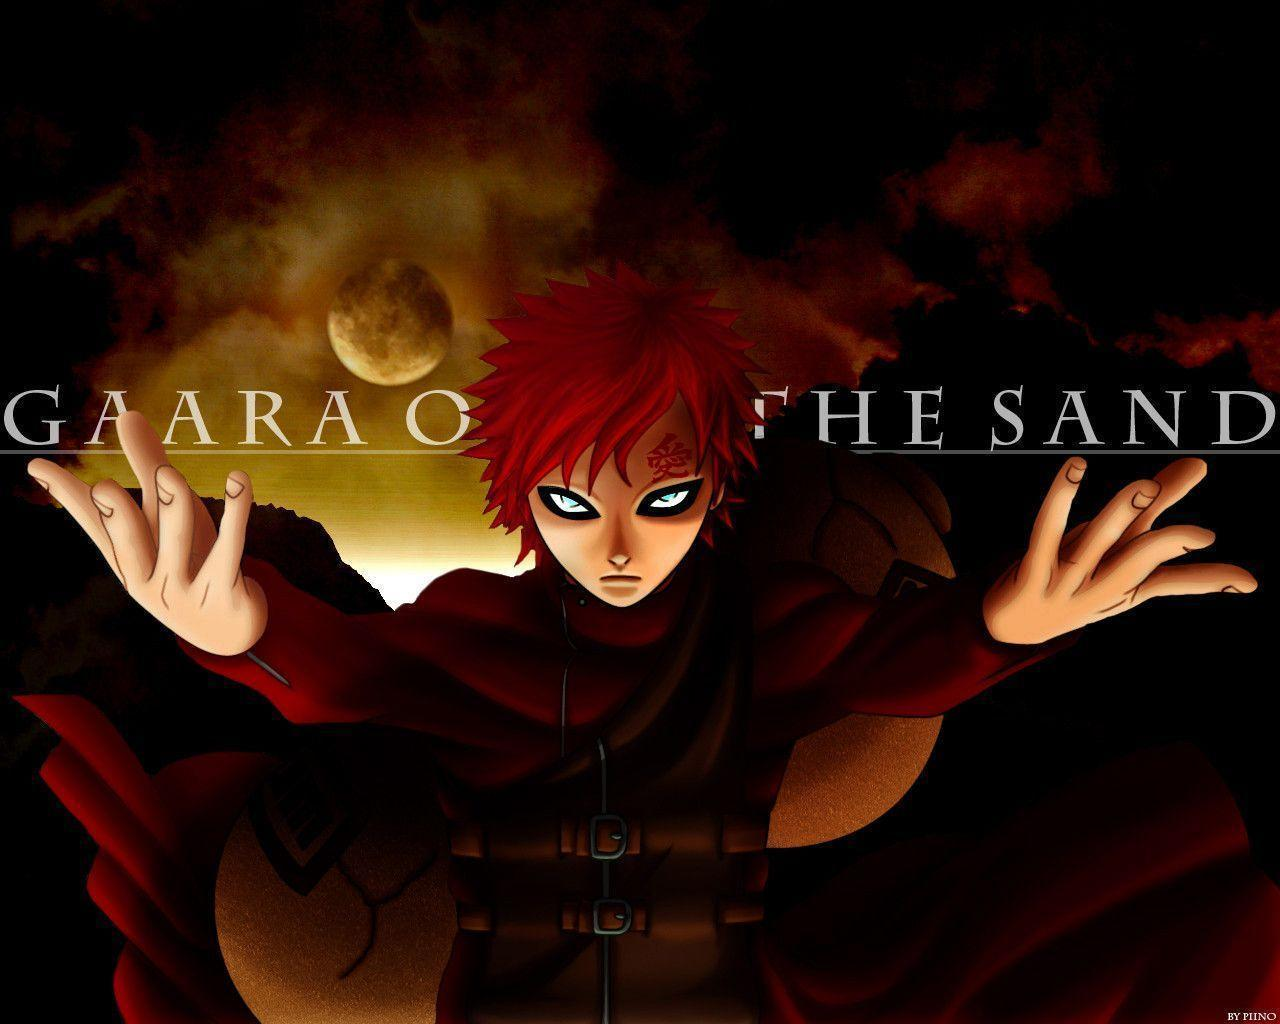 naruto and gaara wallpaper - photo #8